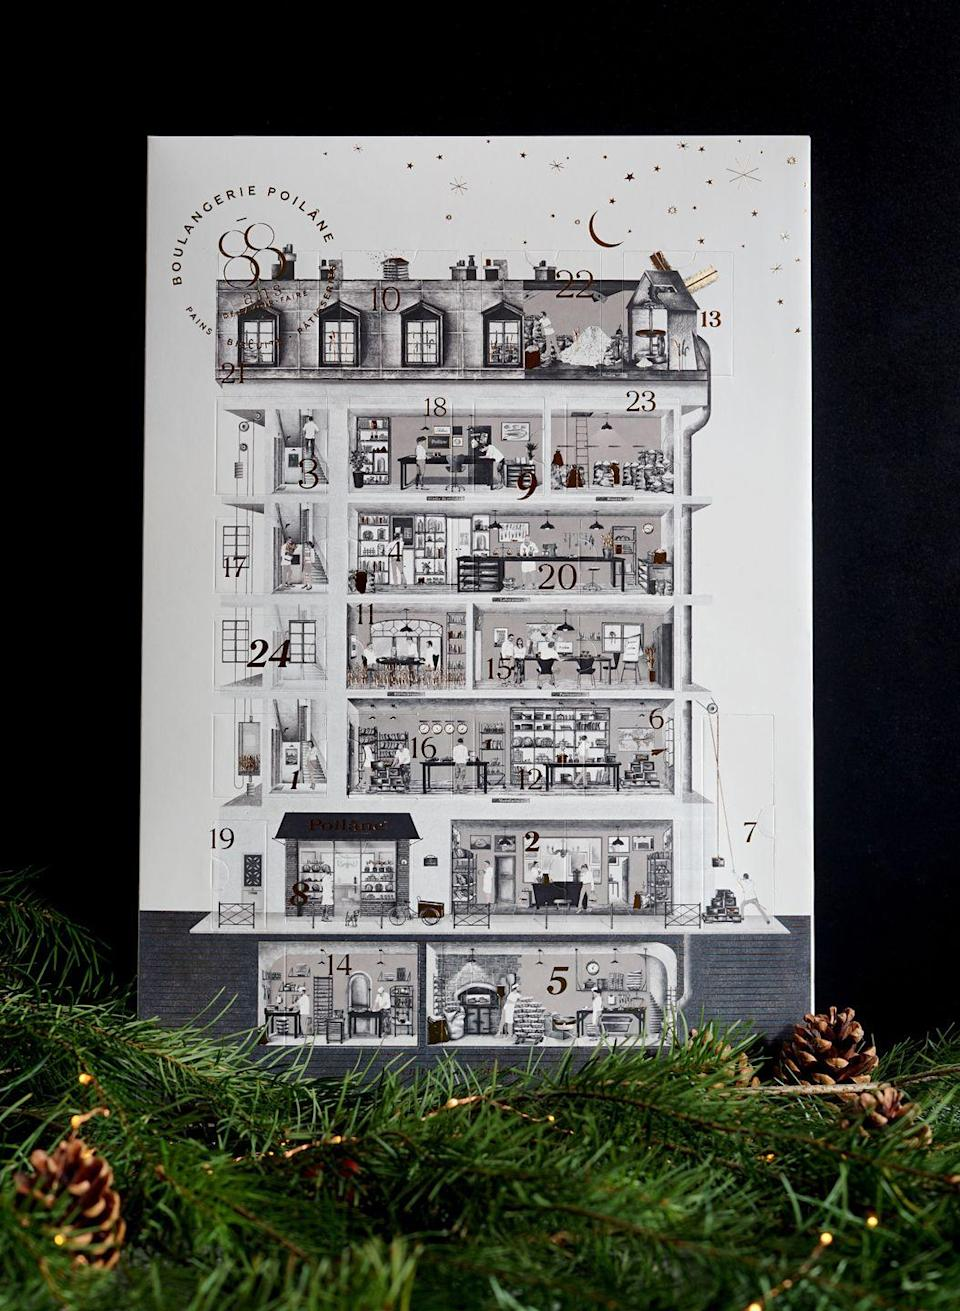 """<p>There are more French treats from bakery Poilane, who launched their first ever advent calendar last year. Thankfully, they've brought it back for 2020, and filled each window with beautiful biscuits, chocolate and nougat for the discerning snacker. The illustration by Axel Charrier is a sweet tribute to their original bakery in Saint-Germain-des-Prés. £32, <a href=""""https://shop.poilane.com/"""" rel=""""nofollow noopener"""" target=""""_blank"""" data-ylk=""""slk:shop.poilane.com"""" class=""""link rapid-noclick-resp"""">shop.poilane.com</a></p>"""